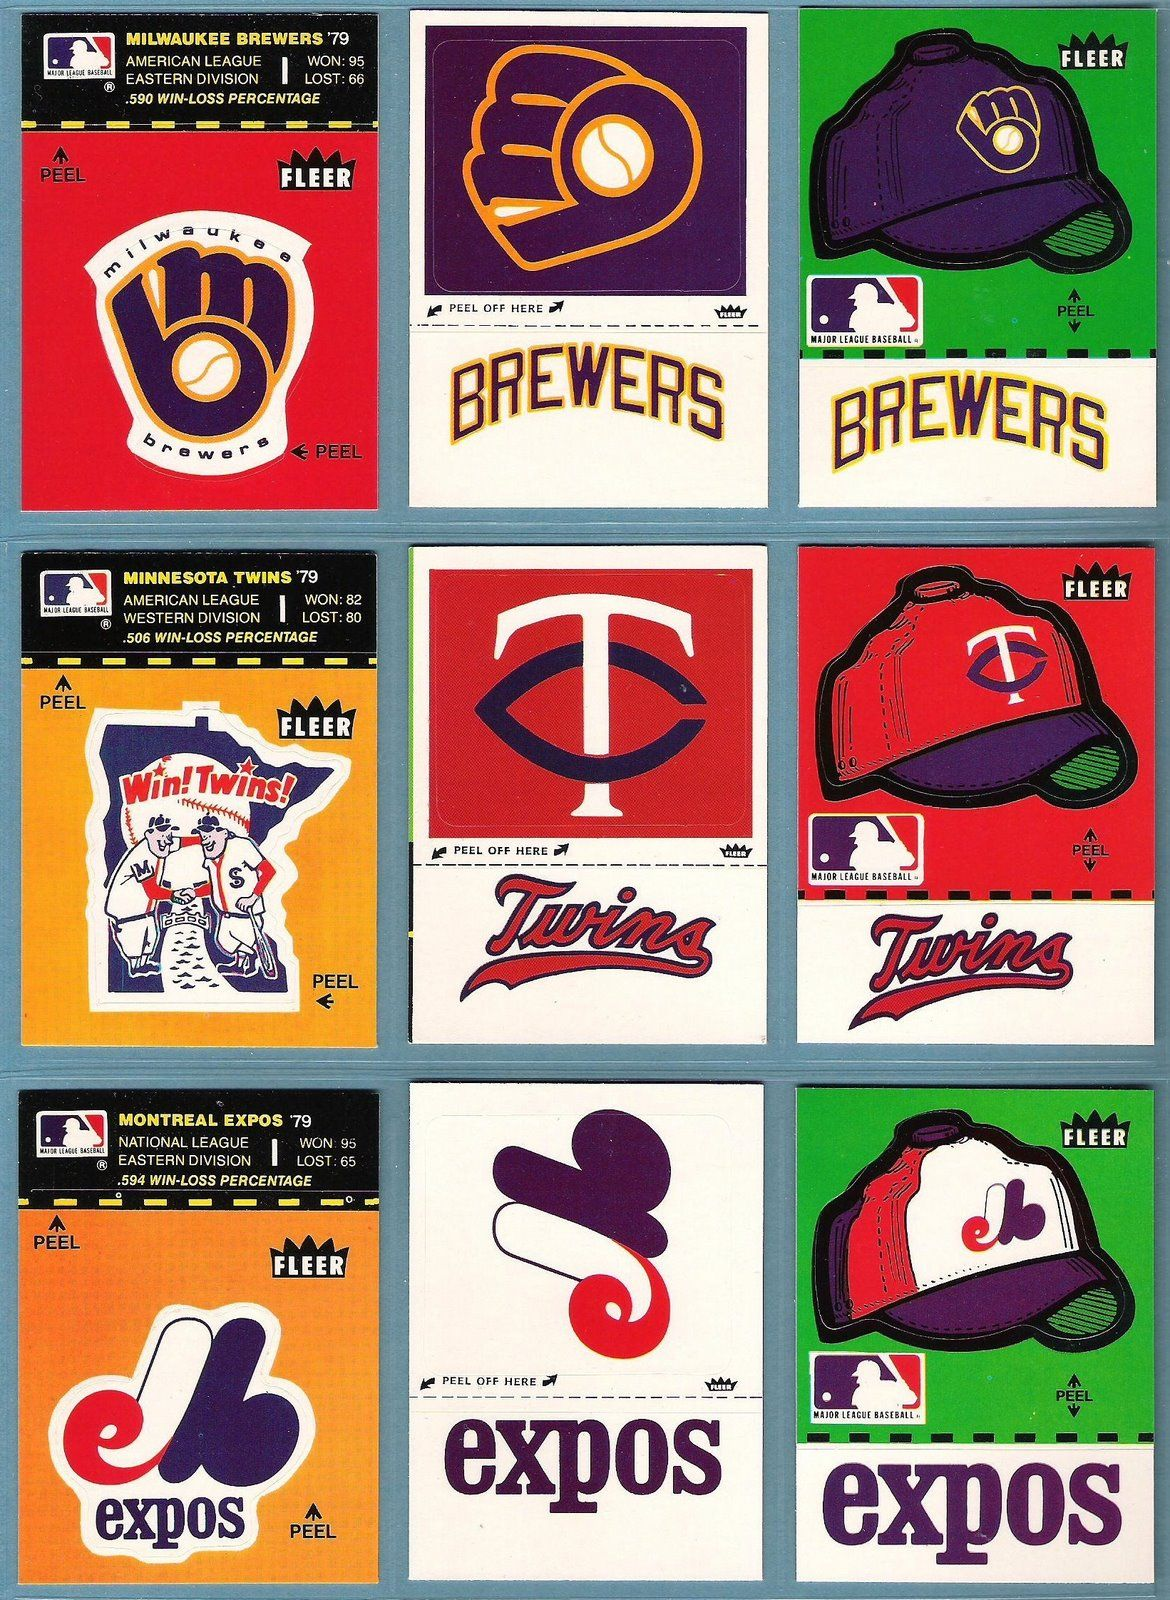 The Fleer Sticker Project 1980 Fleer Baseball Stickers